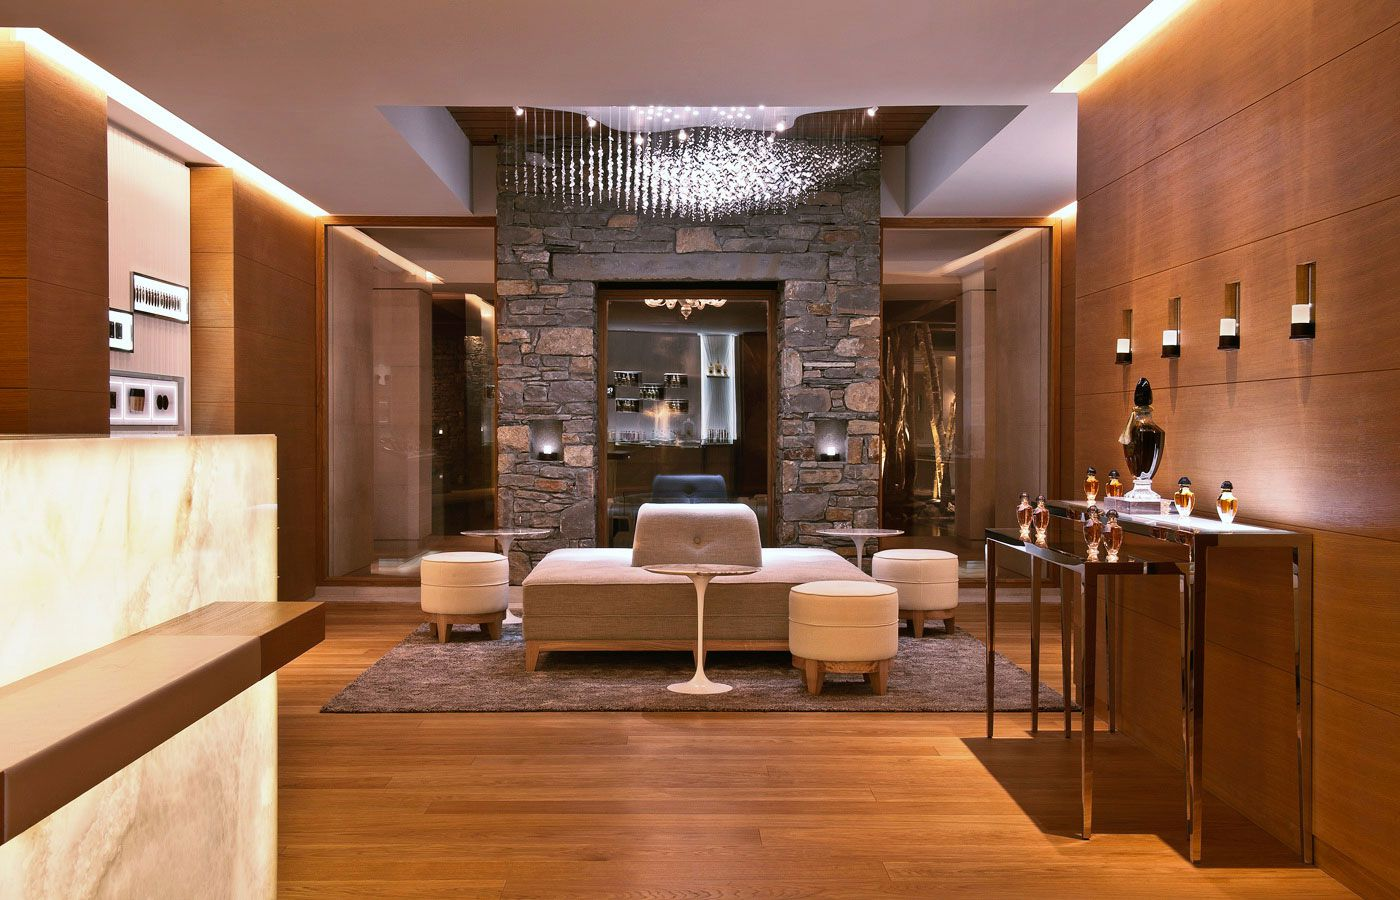 Cheval-Blanc-in-Courchevel-22